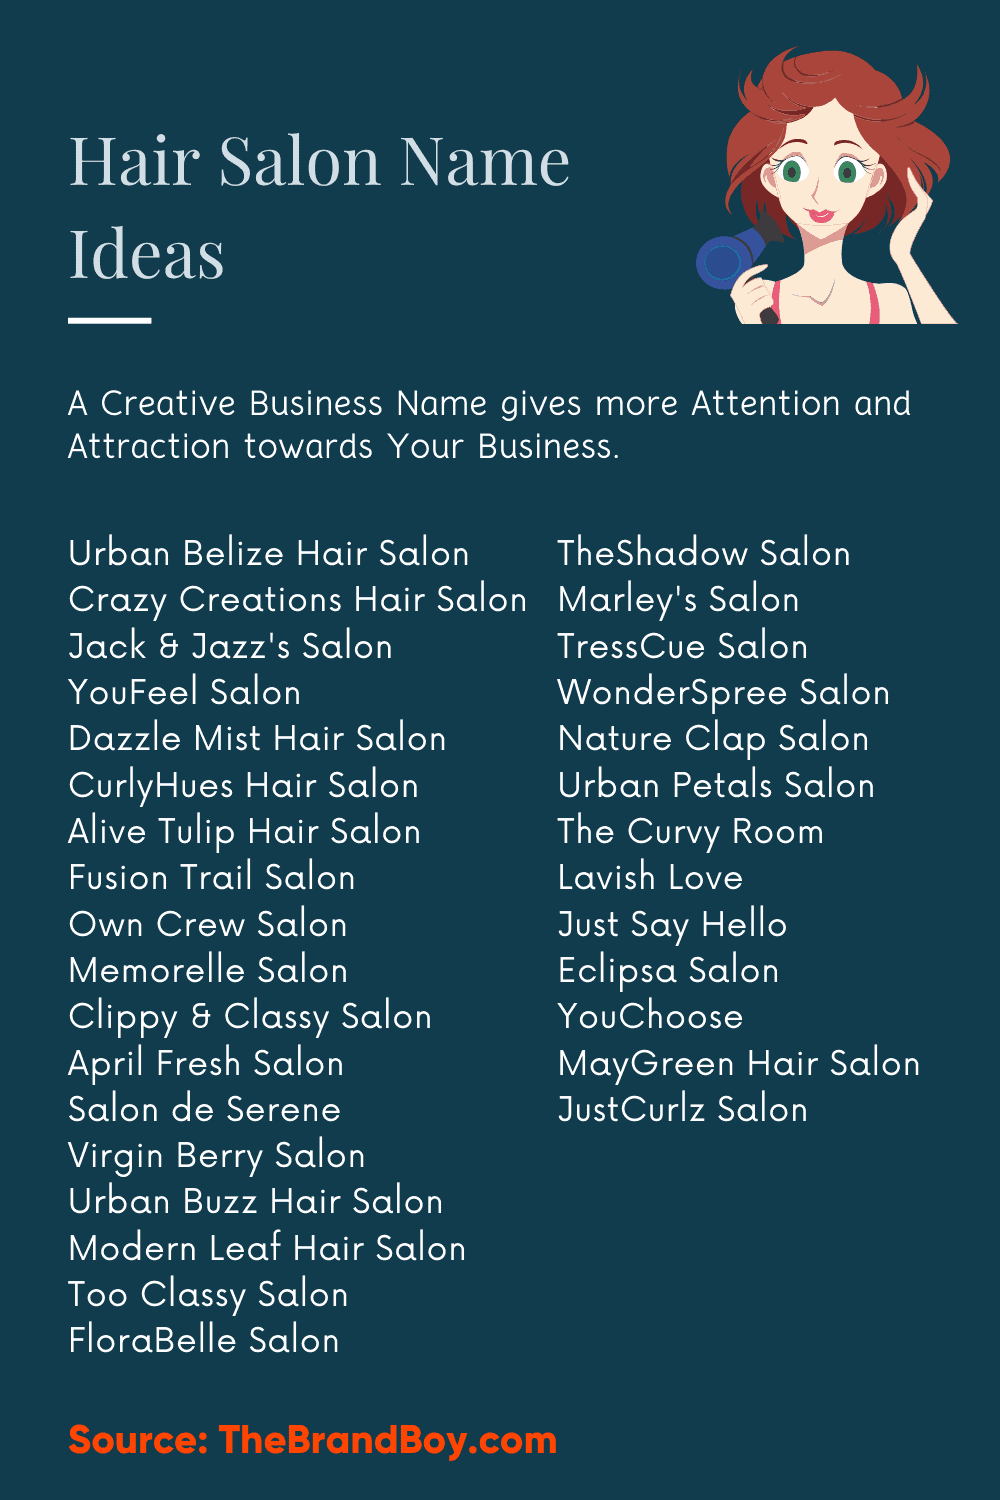 676 Creative Hair Salon Names Ideas Thebrandboy Com